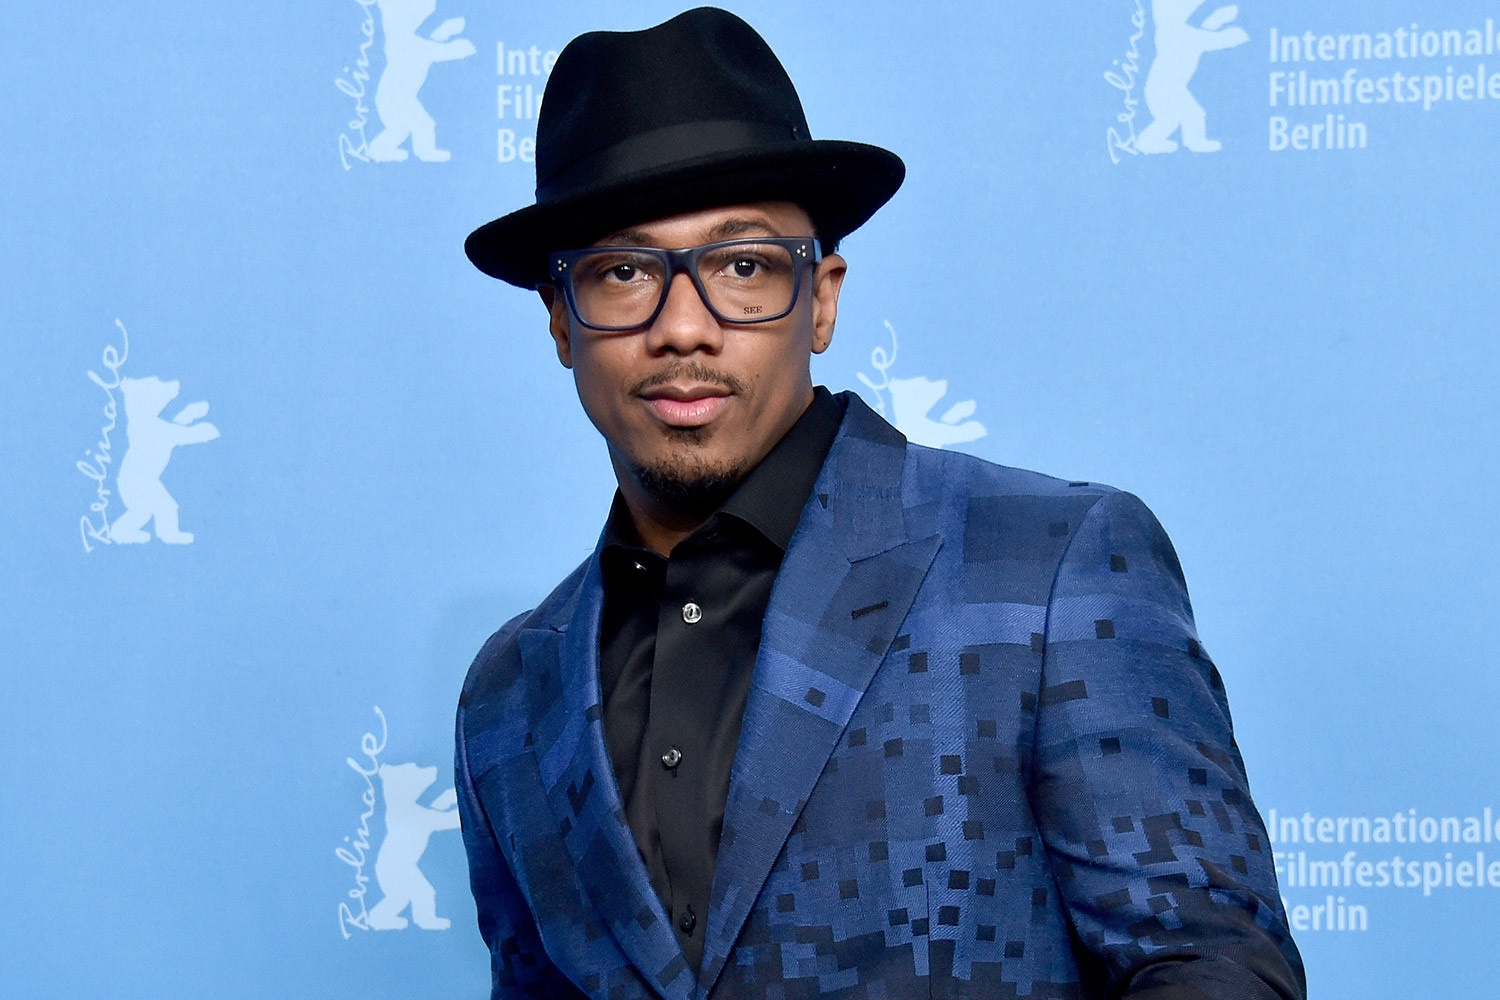 Nick Cannon reveals he's taking a break from having more children after his therapist suggested celibacy following the birth of 7th child